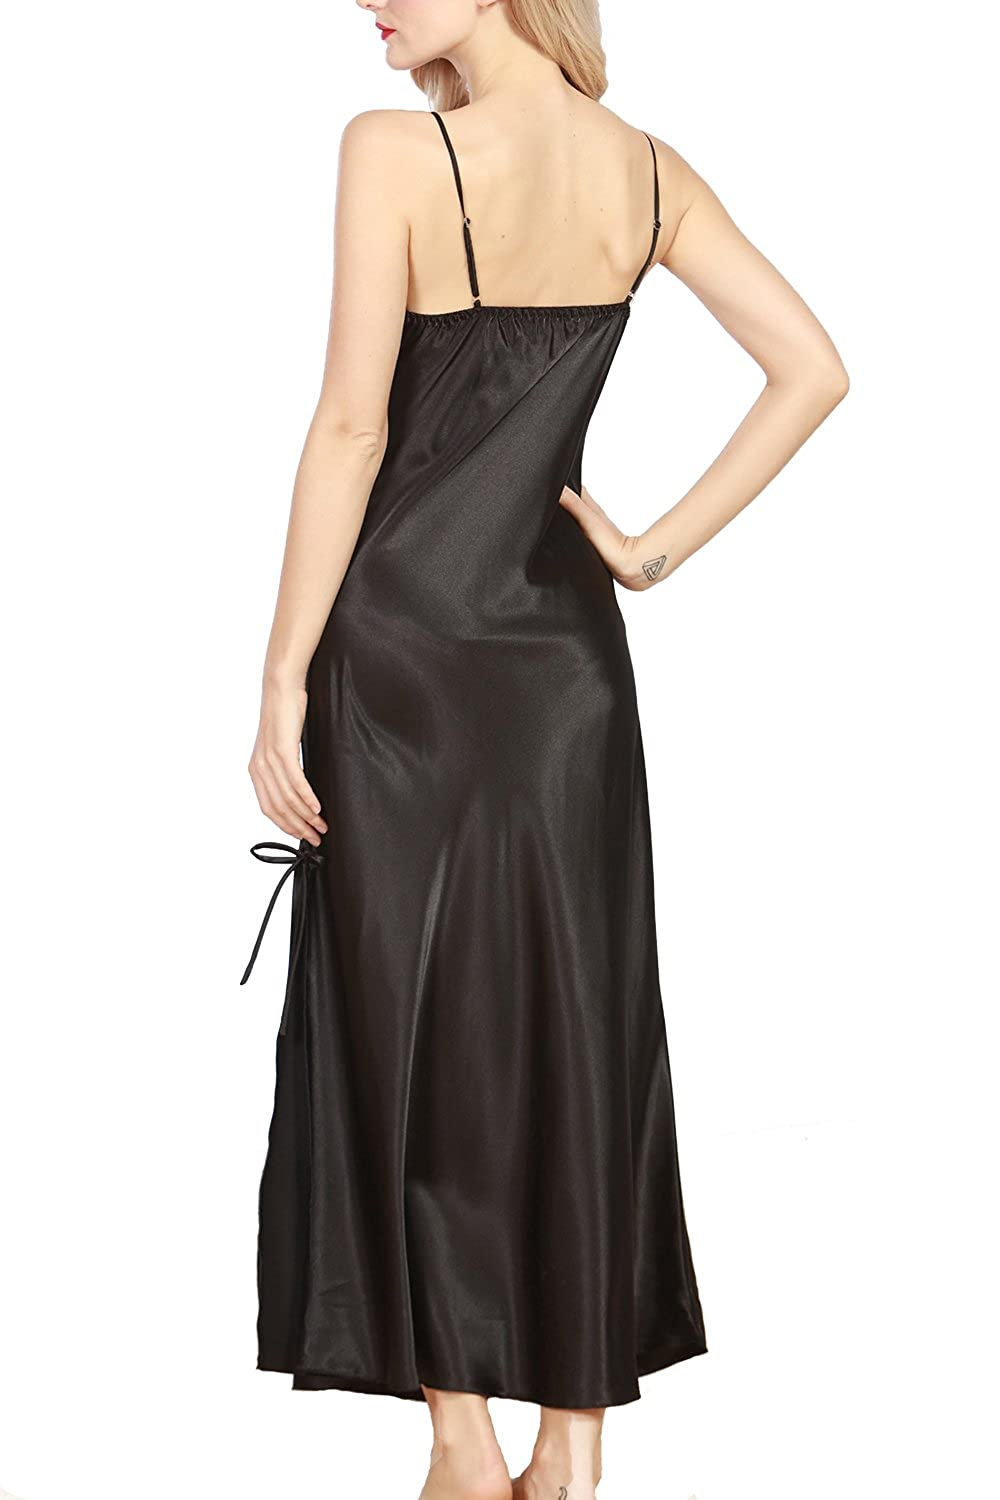 b231b7762d iooho Women s Satin Nightgown Long Slip Sleeveless Sleepwear Night Dress  Sexy Night Wear for Women Black at Amazon Women s Clothing store